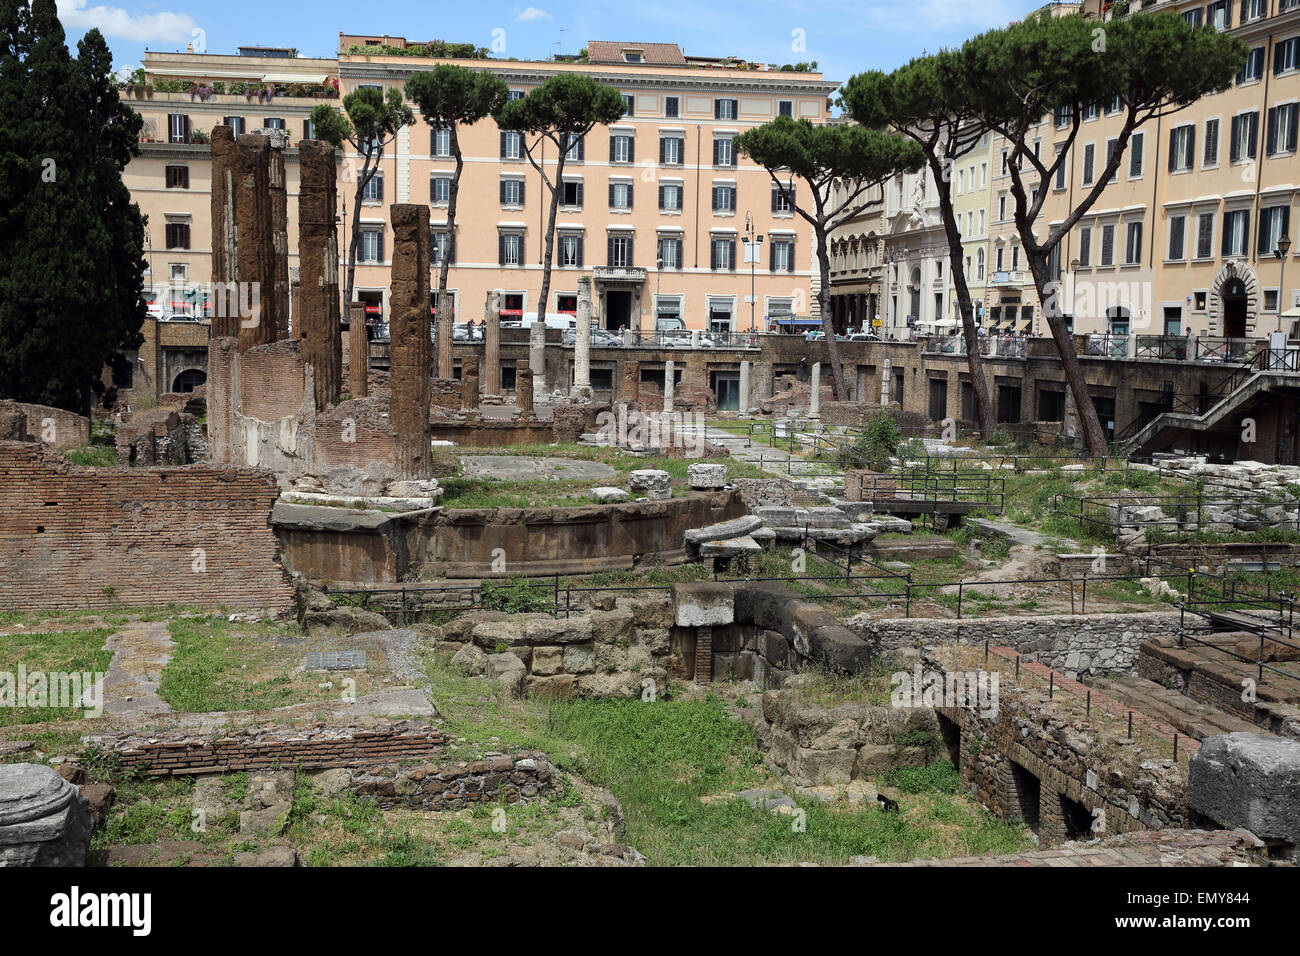 Columns of a former temple in Largo di Torre Argentina in Rome. - Stock Image